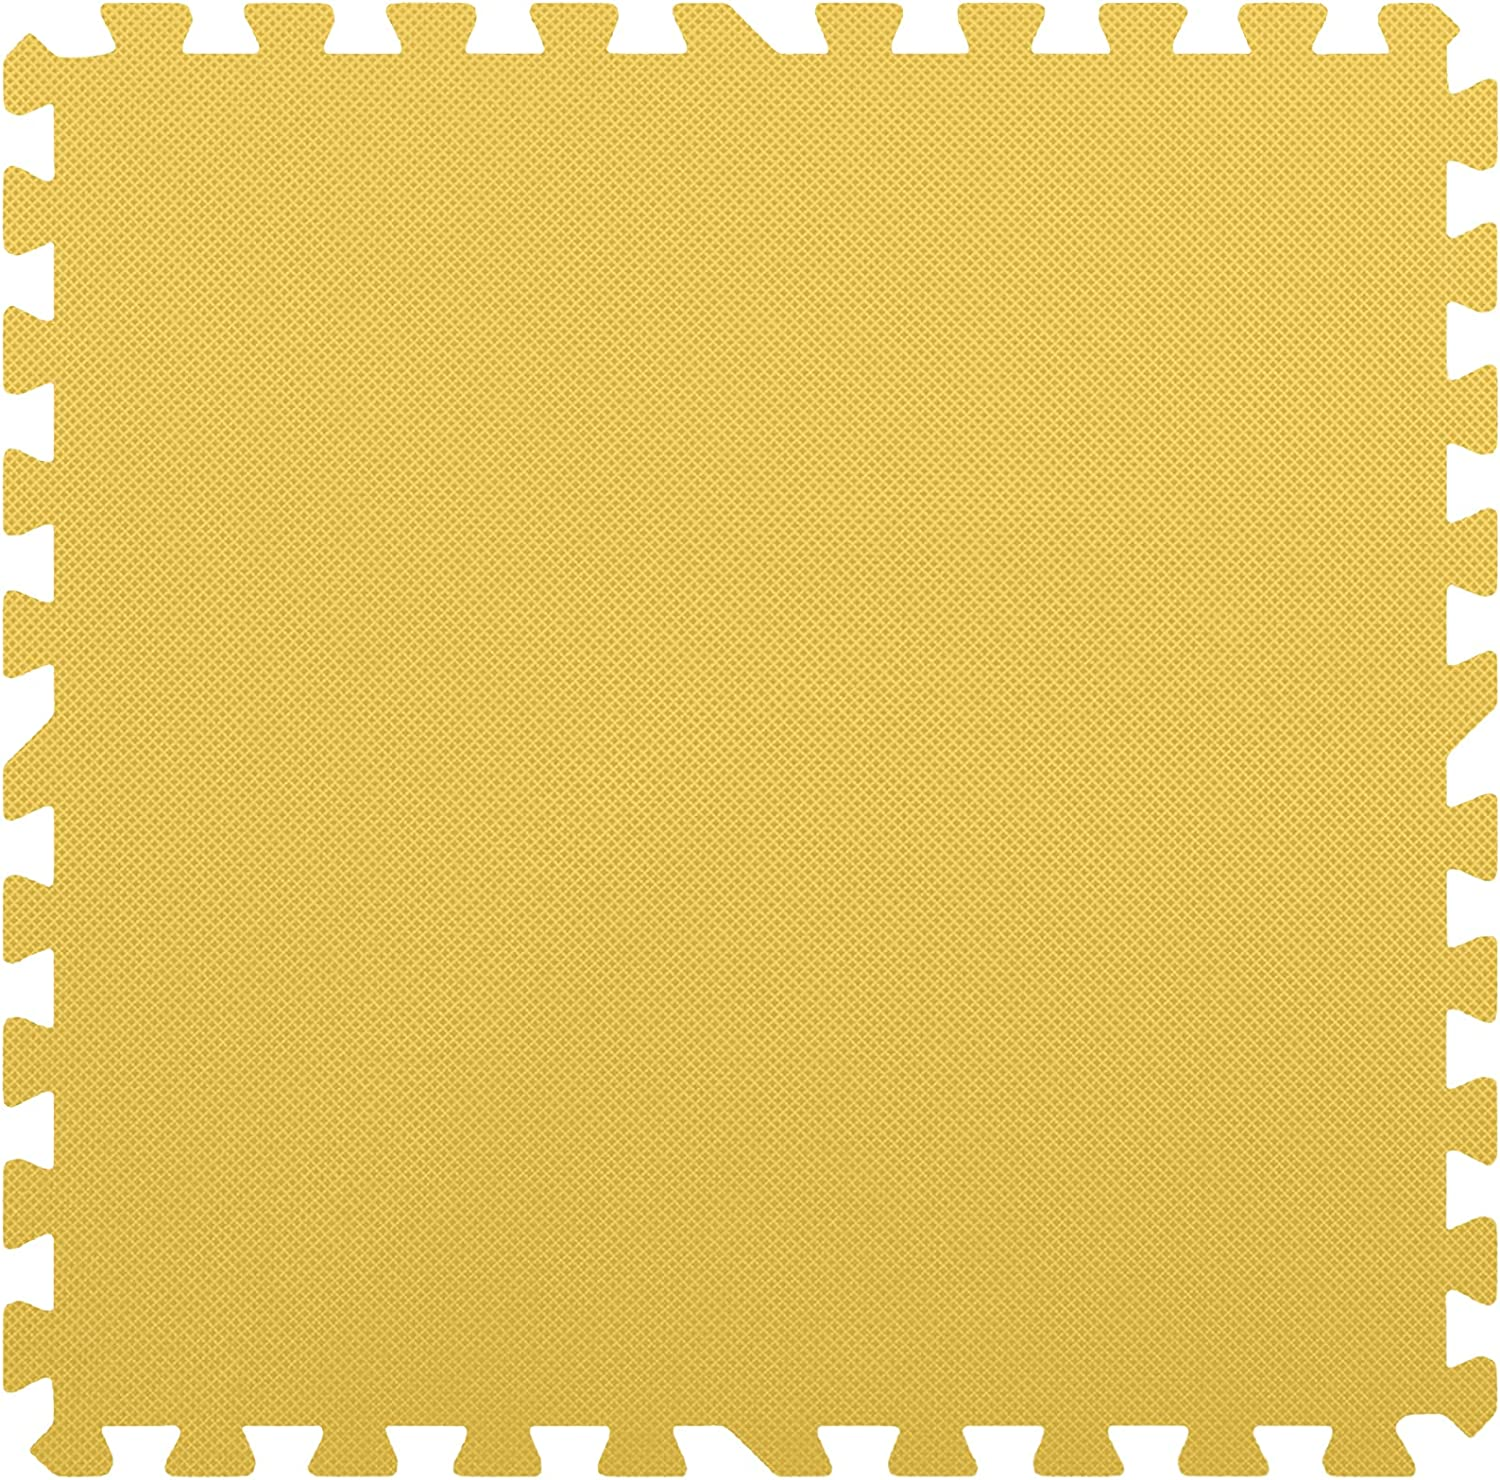 IncStores 1 2 Inch Thick Eco-Soft Flooring Tiles Int Very popular Foam Plus It is very popular